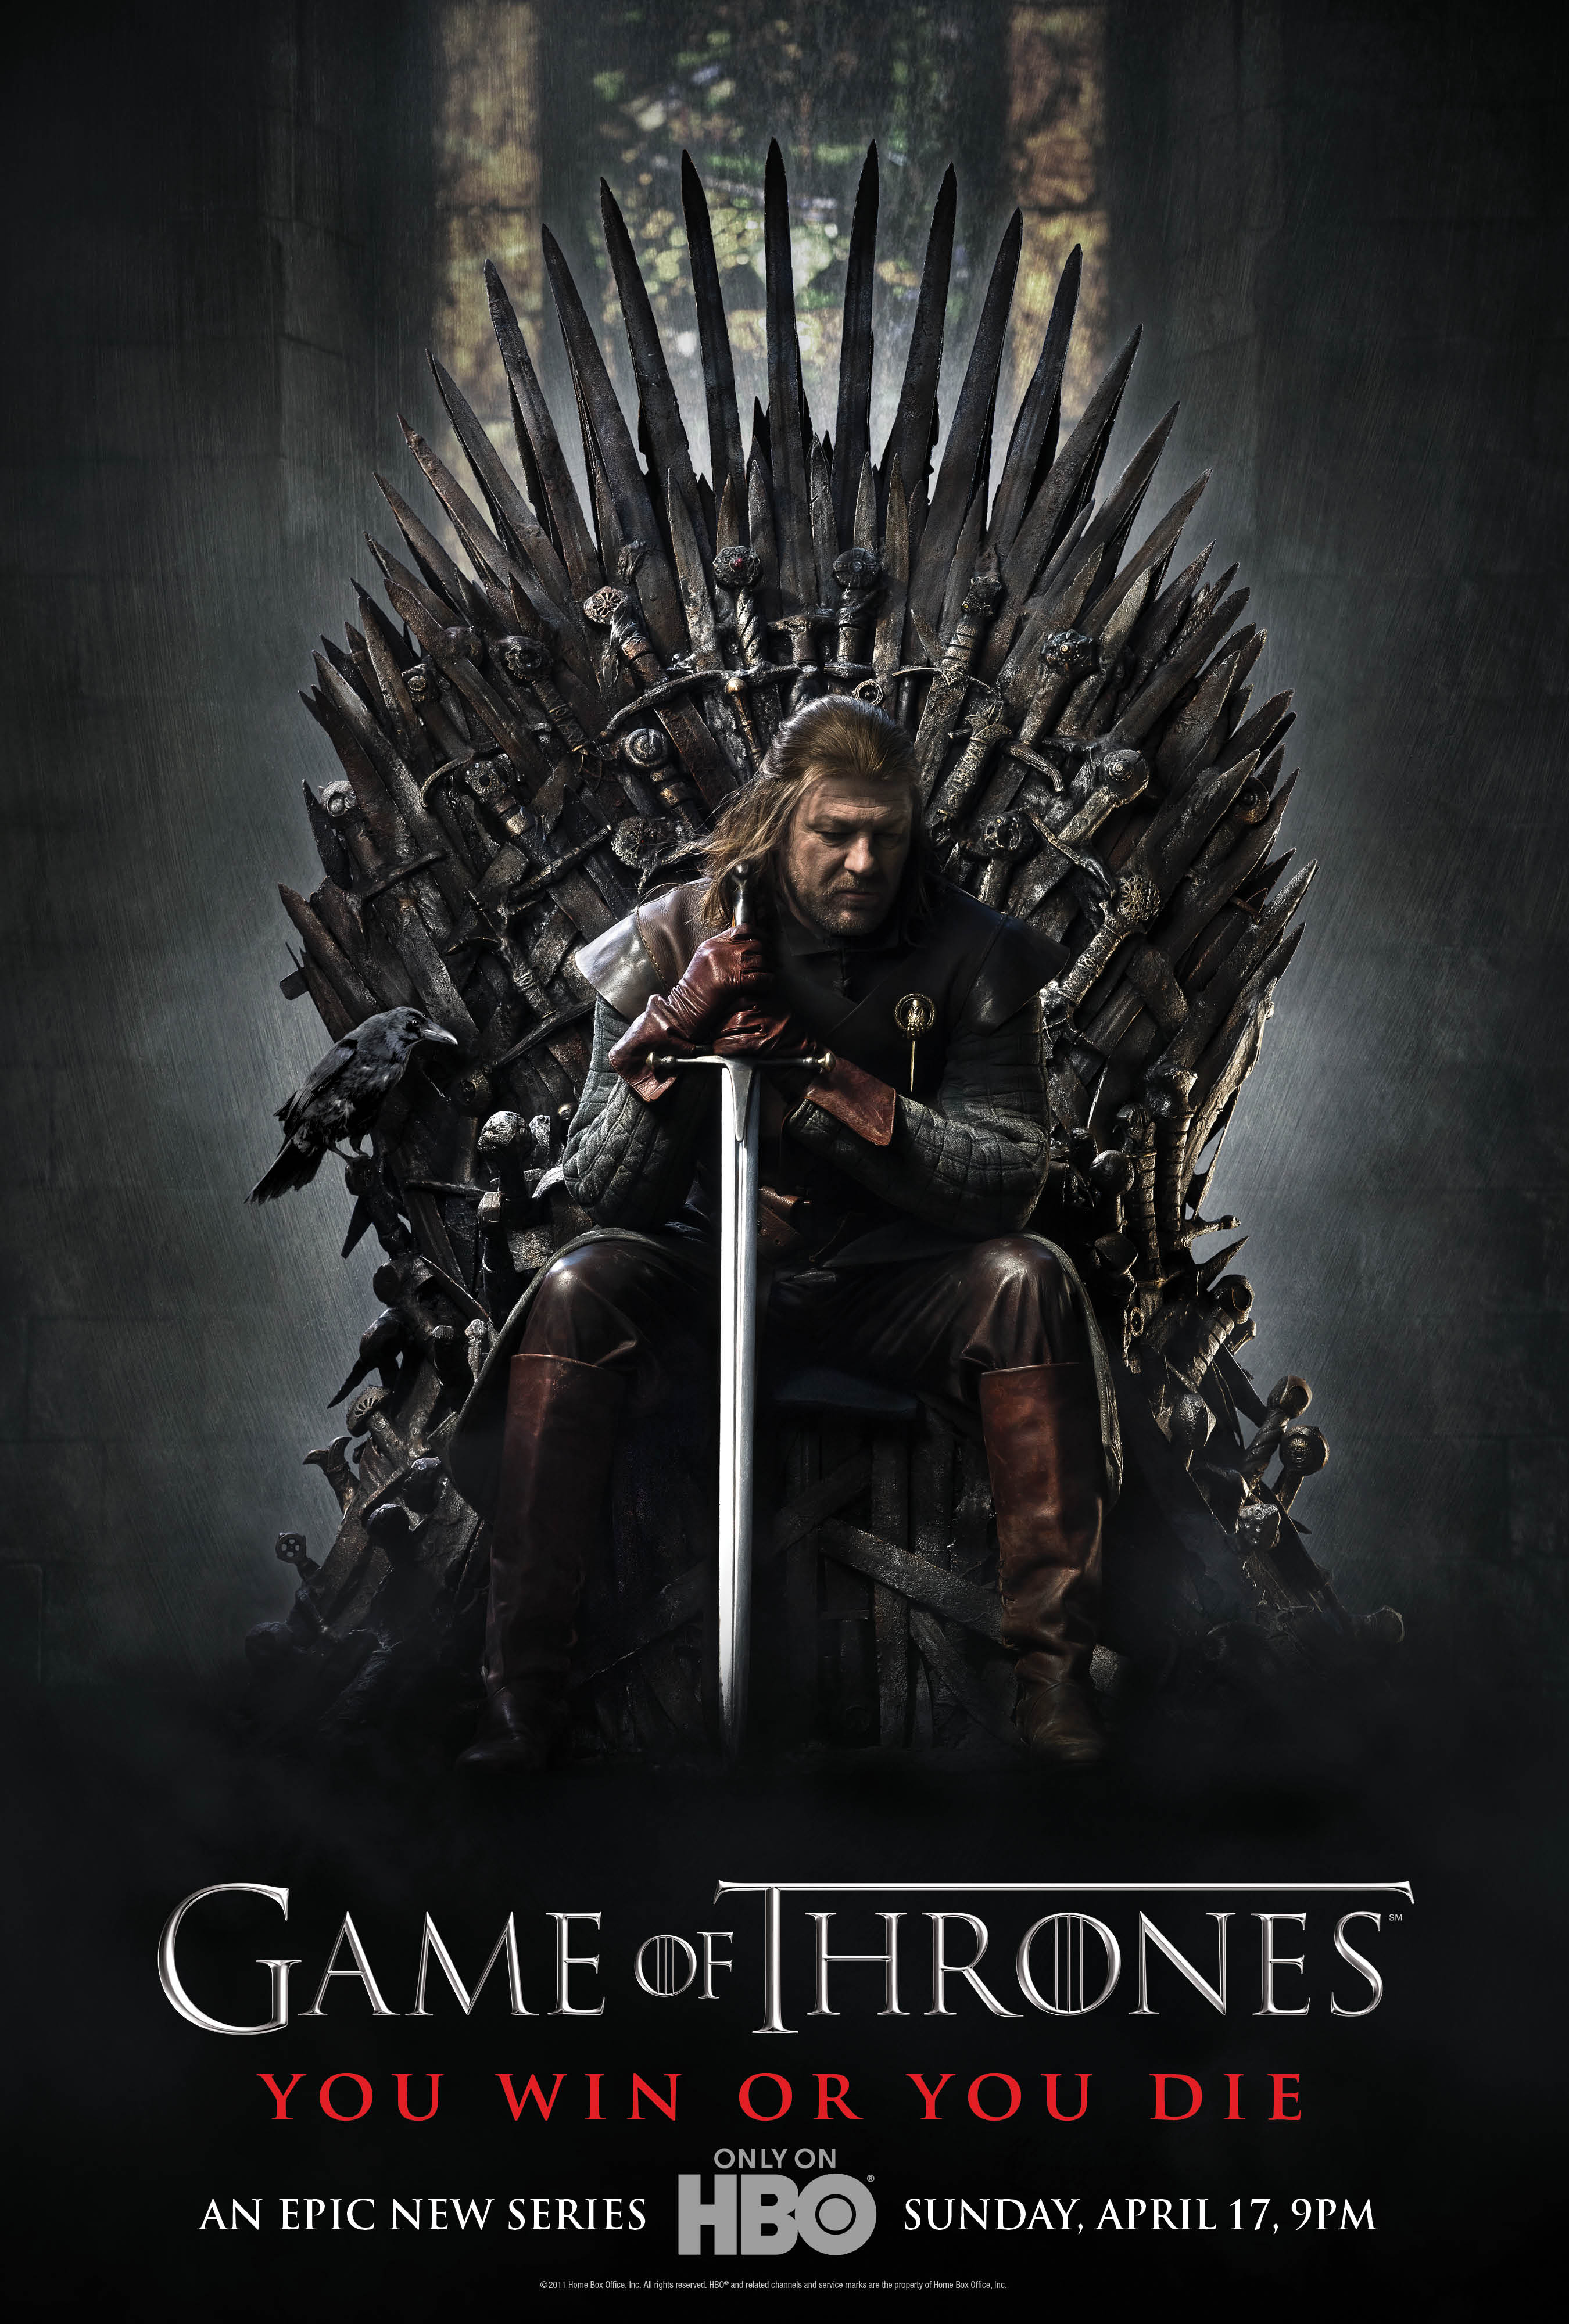 [Multi] [HDTV] Le Tr�ne de fer : Game of Thrones Saison 1 Episodes 1 � 4